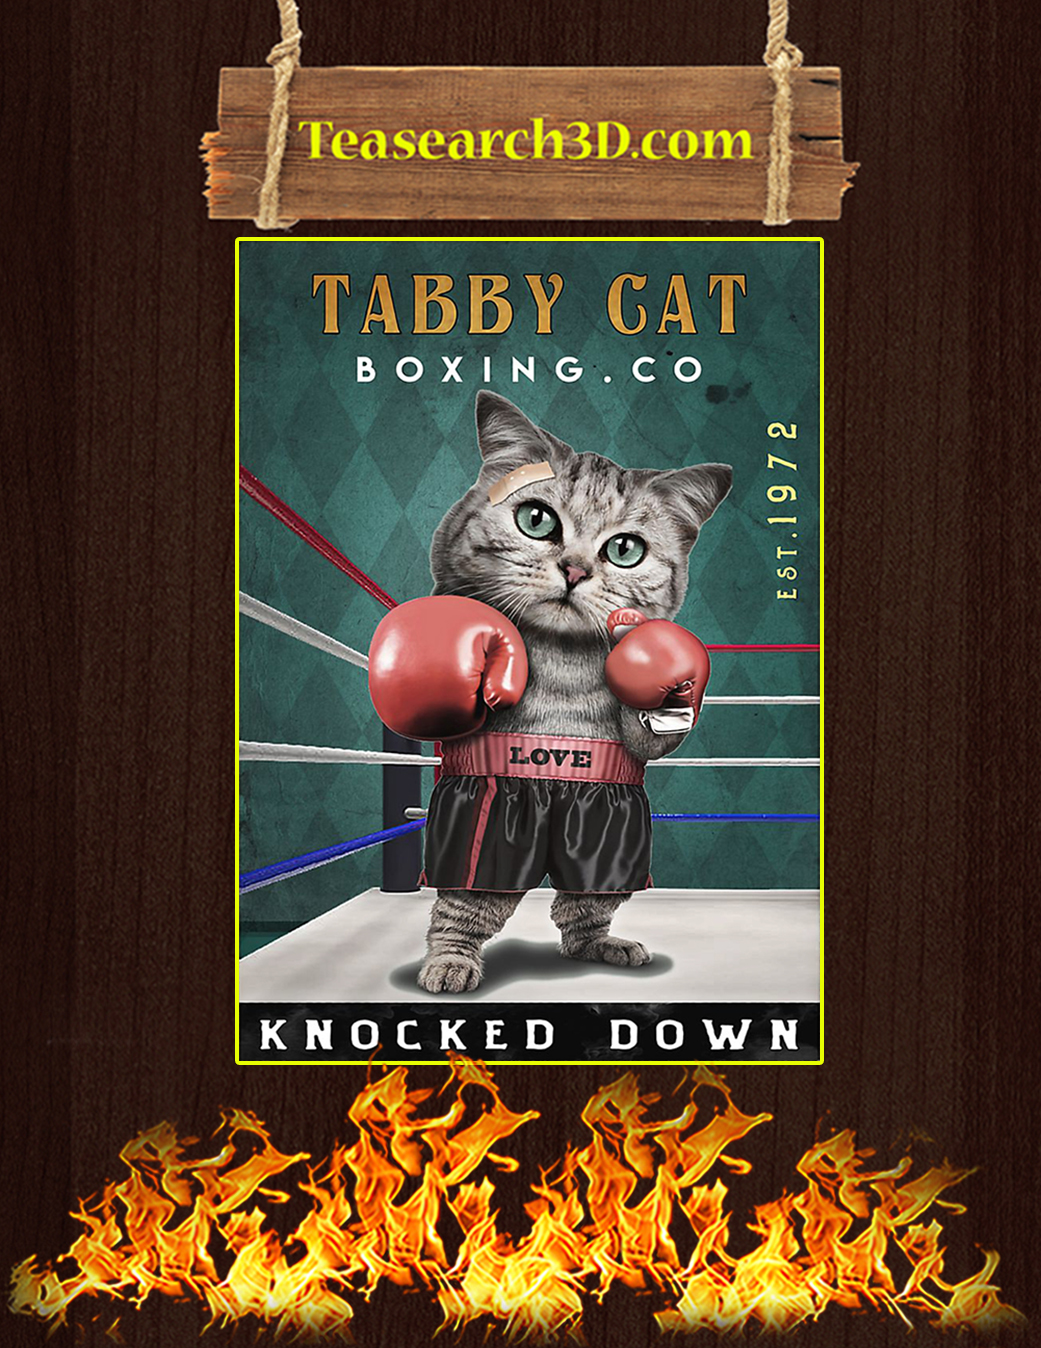 Tabby cat boxing co knocked down poster A1